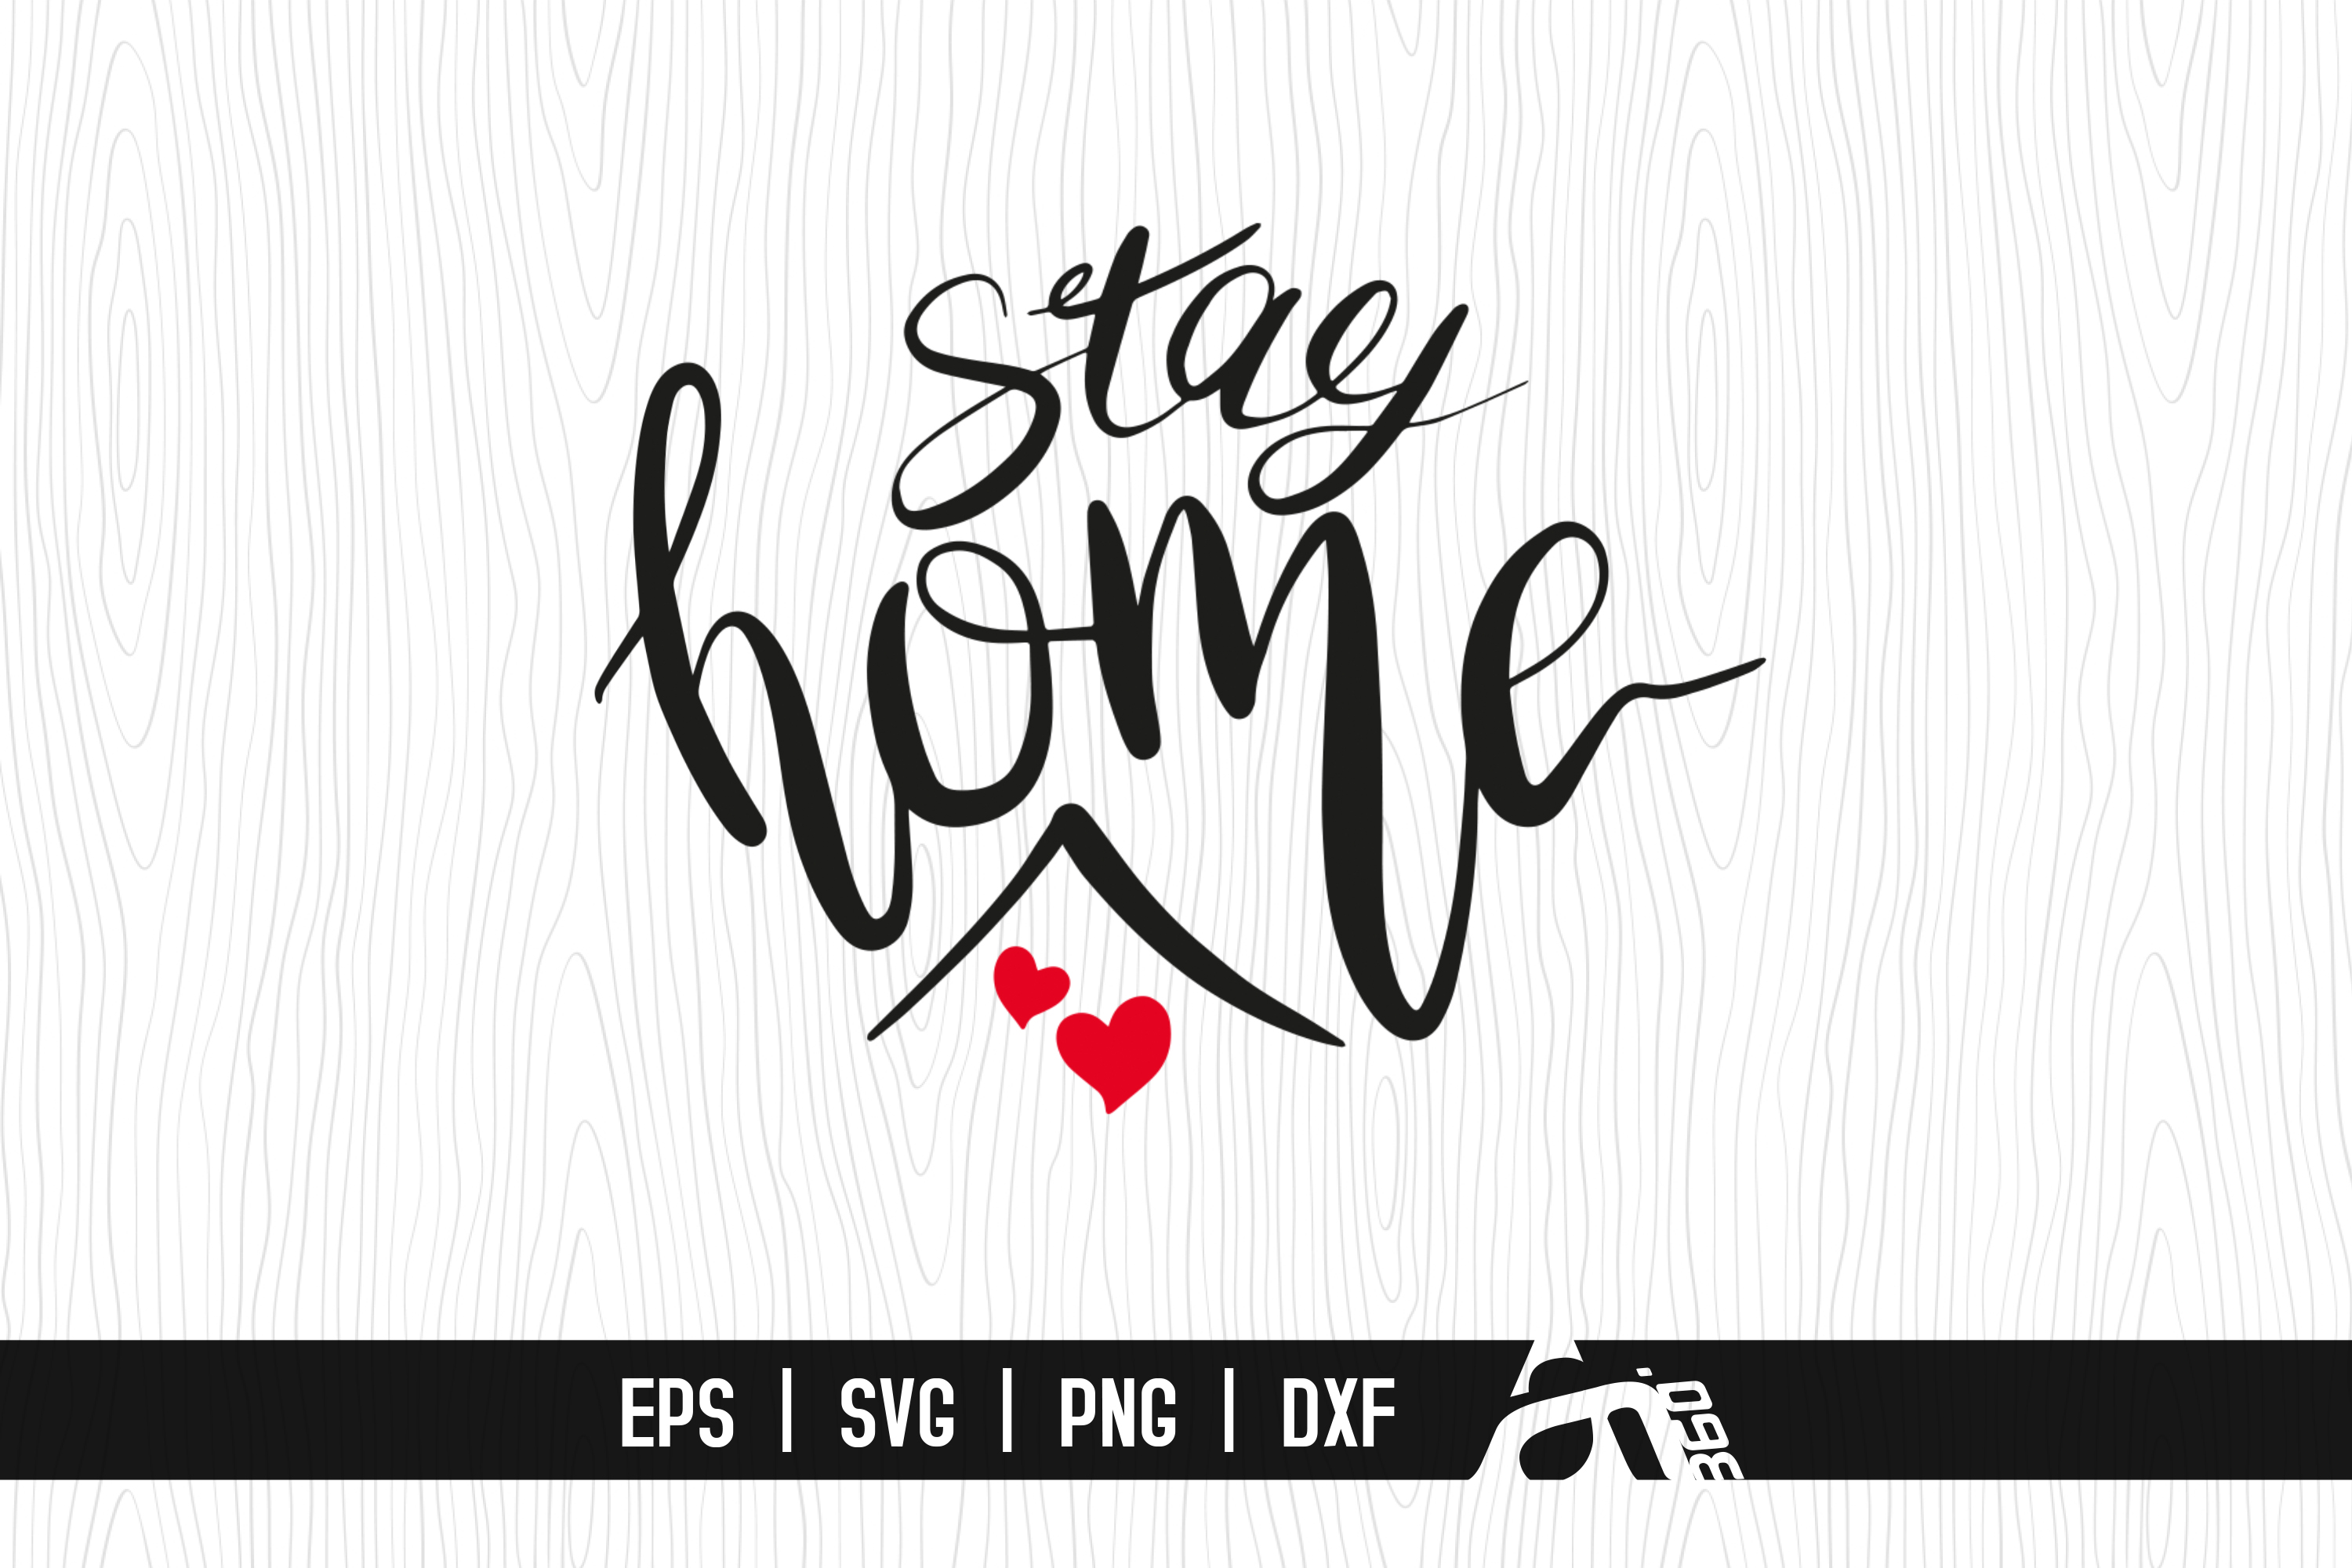 Download Free Stay Home Graphic By Aam360 Creative Fabrica for Cricut Explore, Silhouette and other cutting machines.